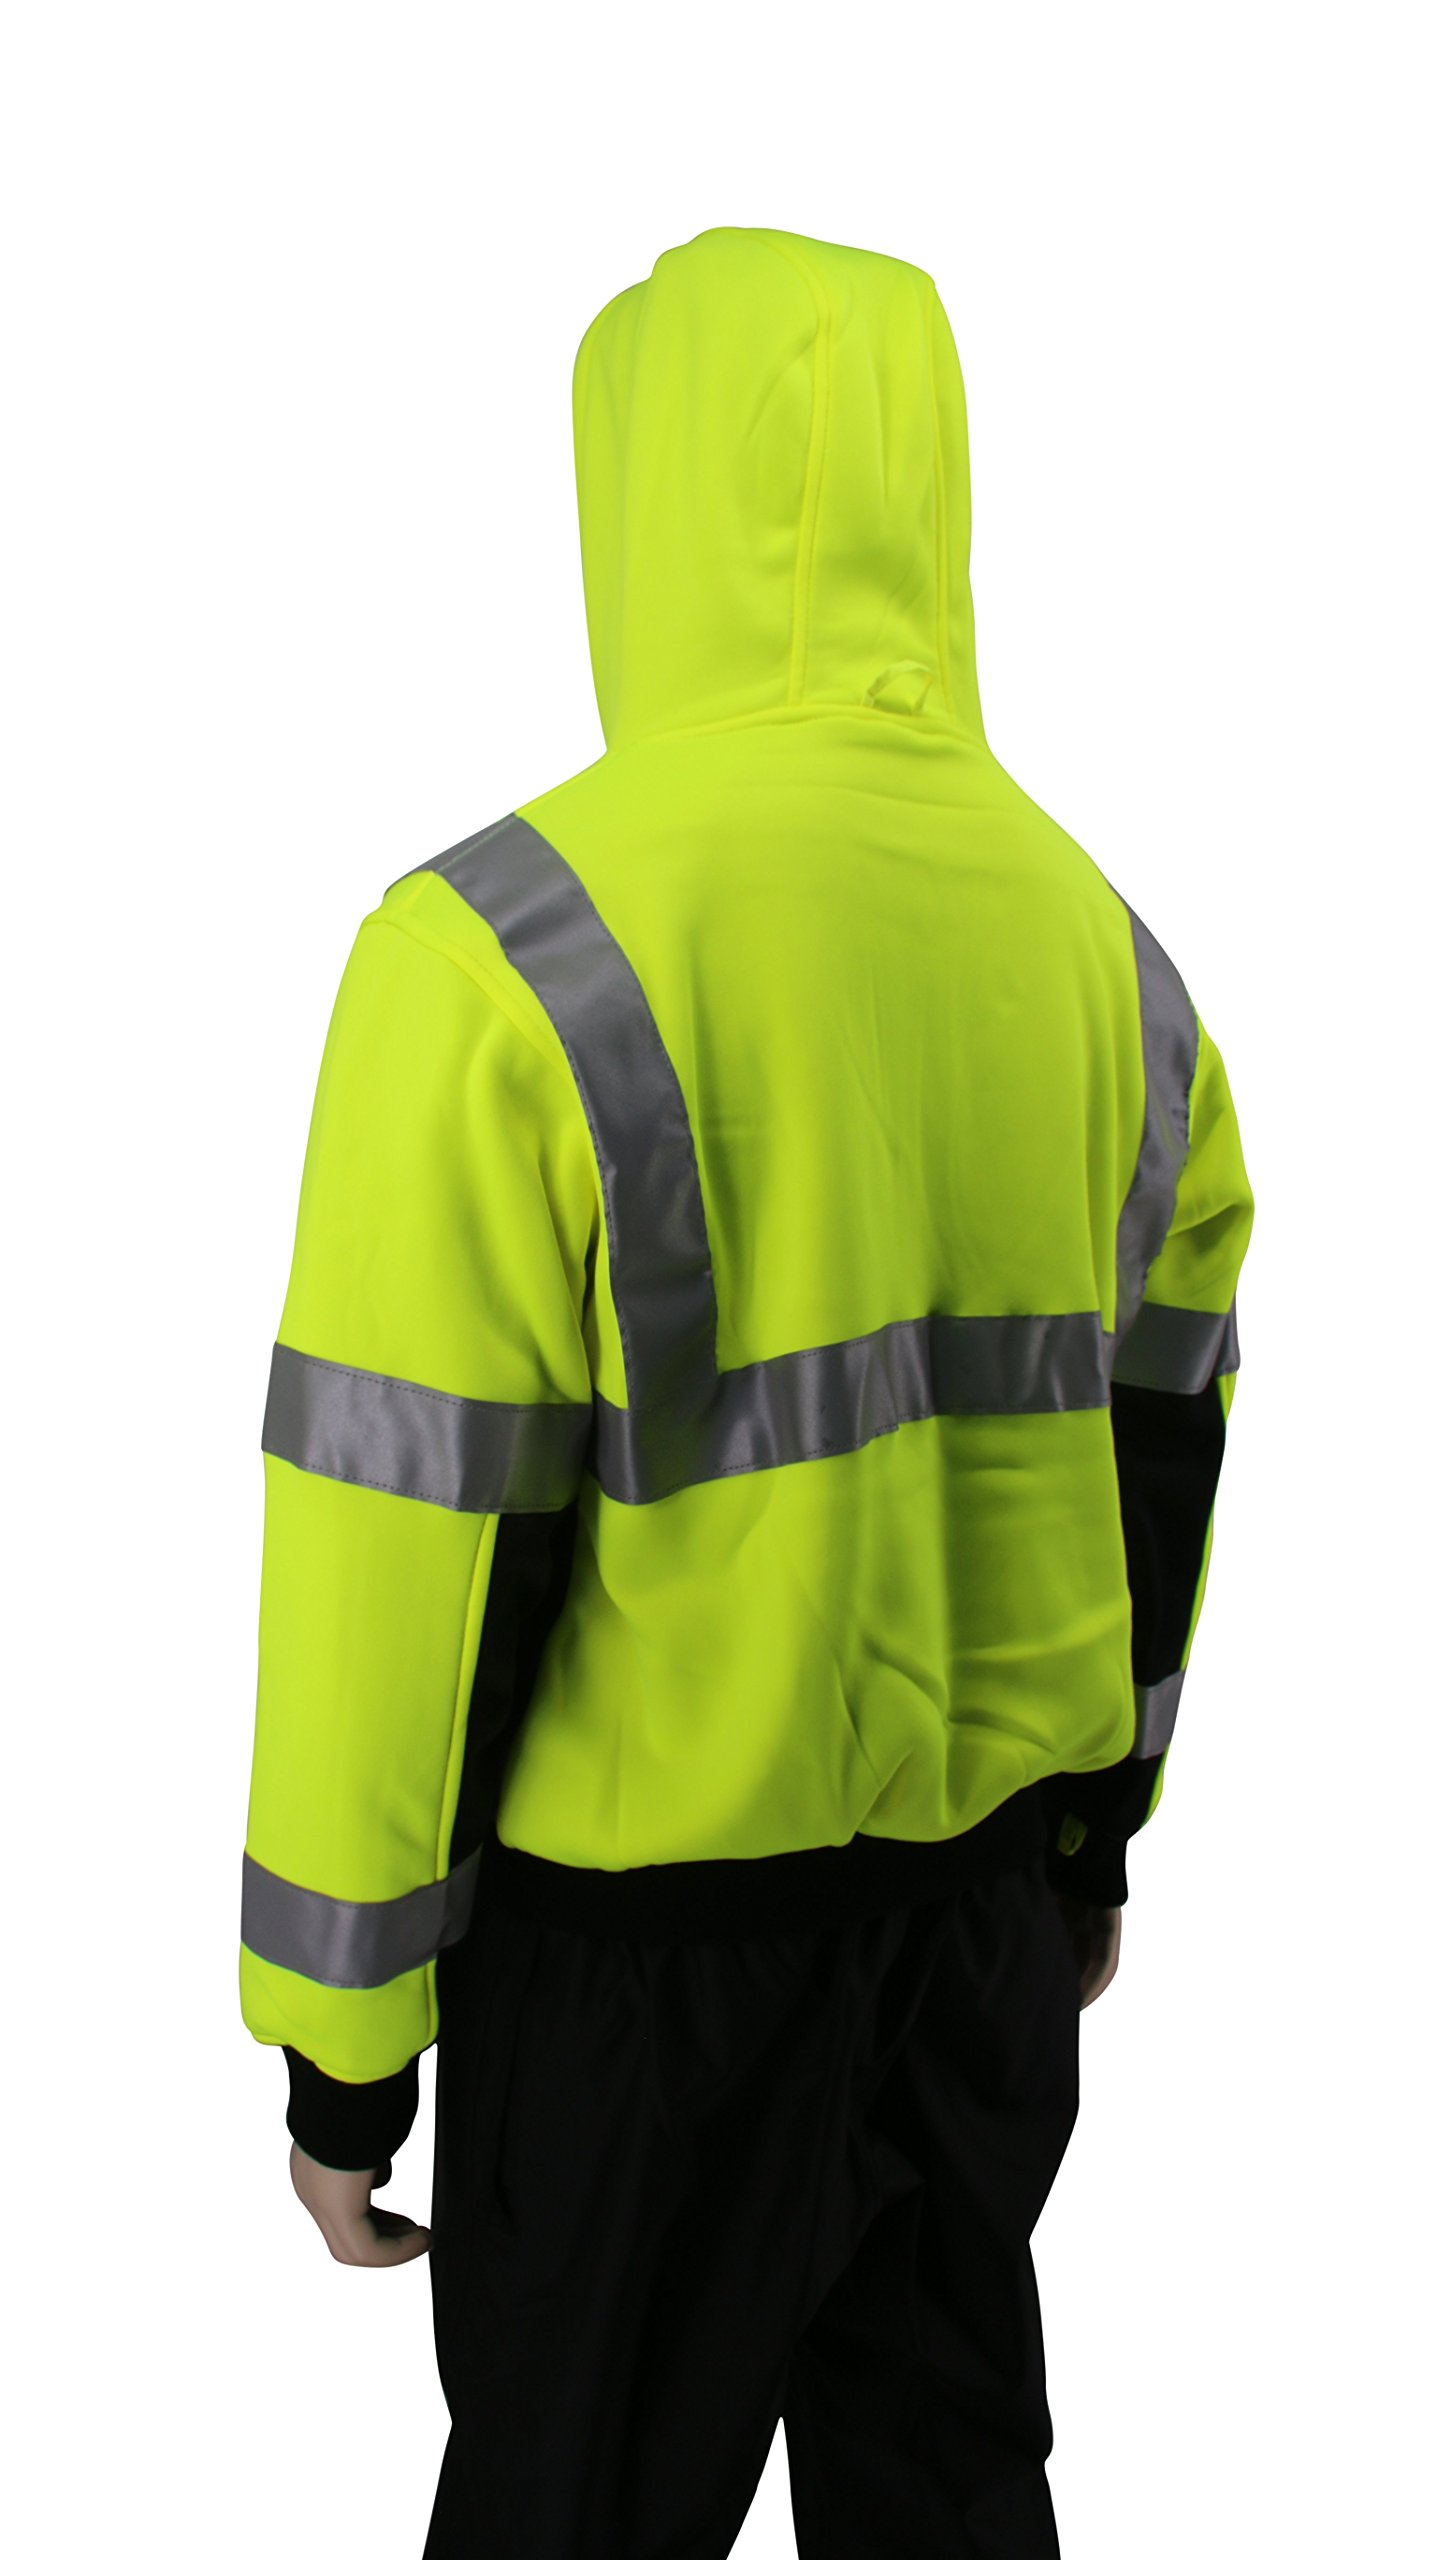 Brite Safety Style 5010 Hi Viz Sweatshirts for Men or Women   Safety Hi Vis Hoodie, 2-Tone Sweatshirt   Thermal Liner, Full Zip 16oz, with 3M Reflective Tape   ANSI 107 Class 3 (4XL) by Brite Safety (Image #4)